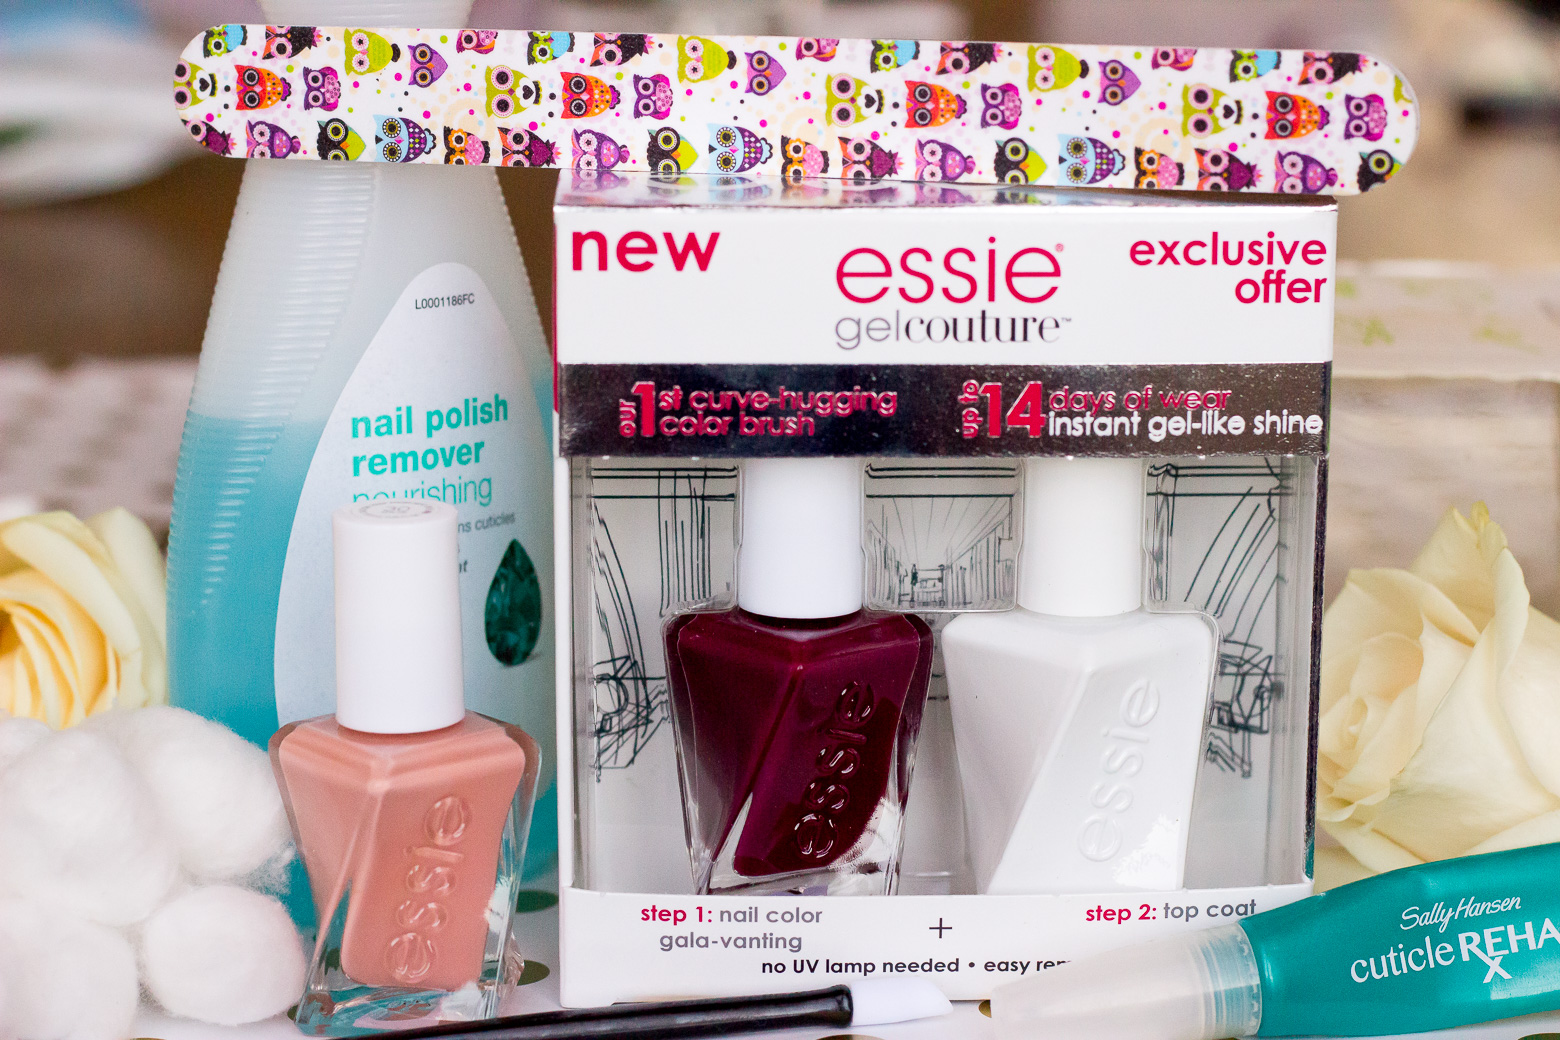 Essie Gel Couture Polish review on Belle Meets World blog